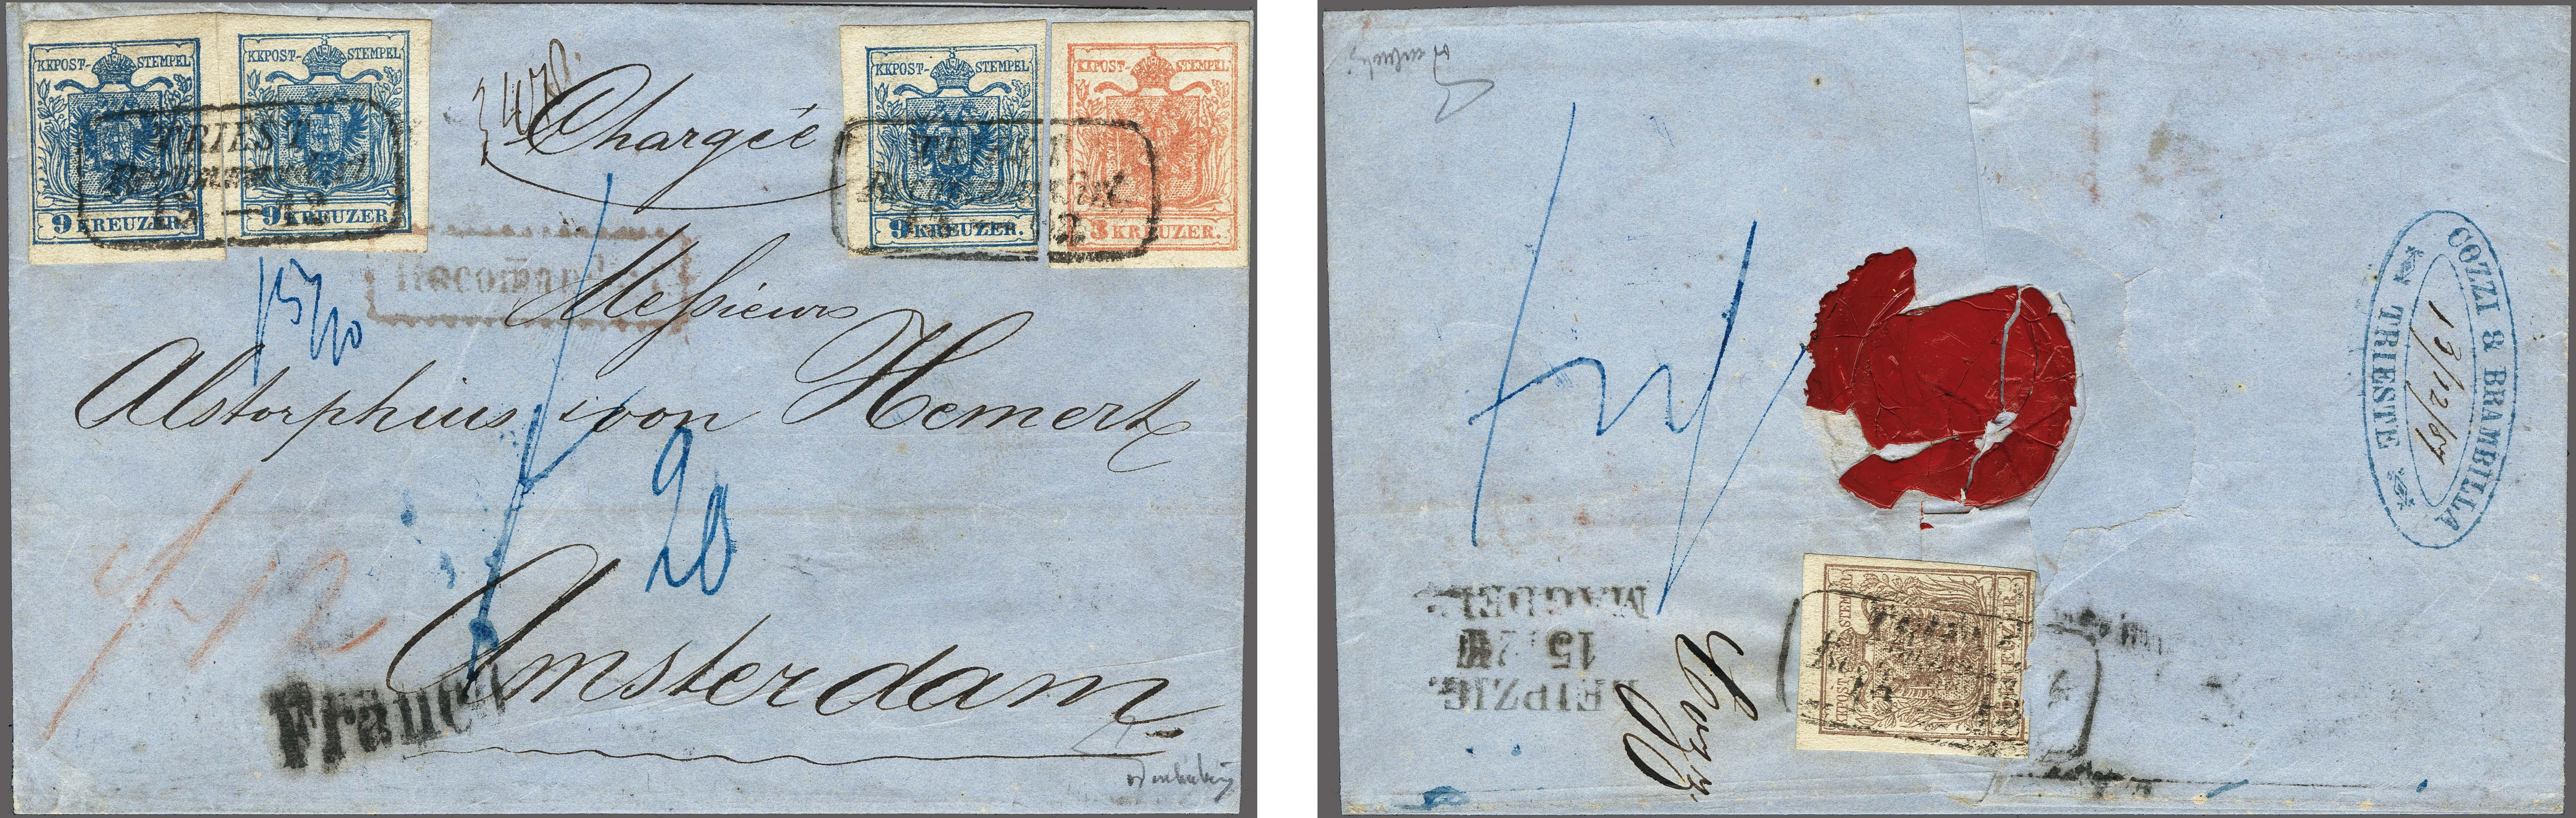 Lot 4 - Austria and former territories Austria -  Corinphila Veilingen Auction 250-253 - Day 1 - Foreign countries